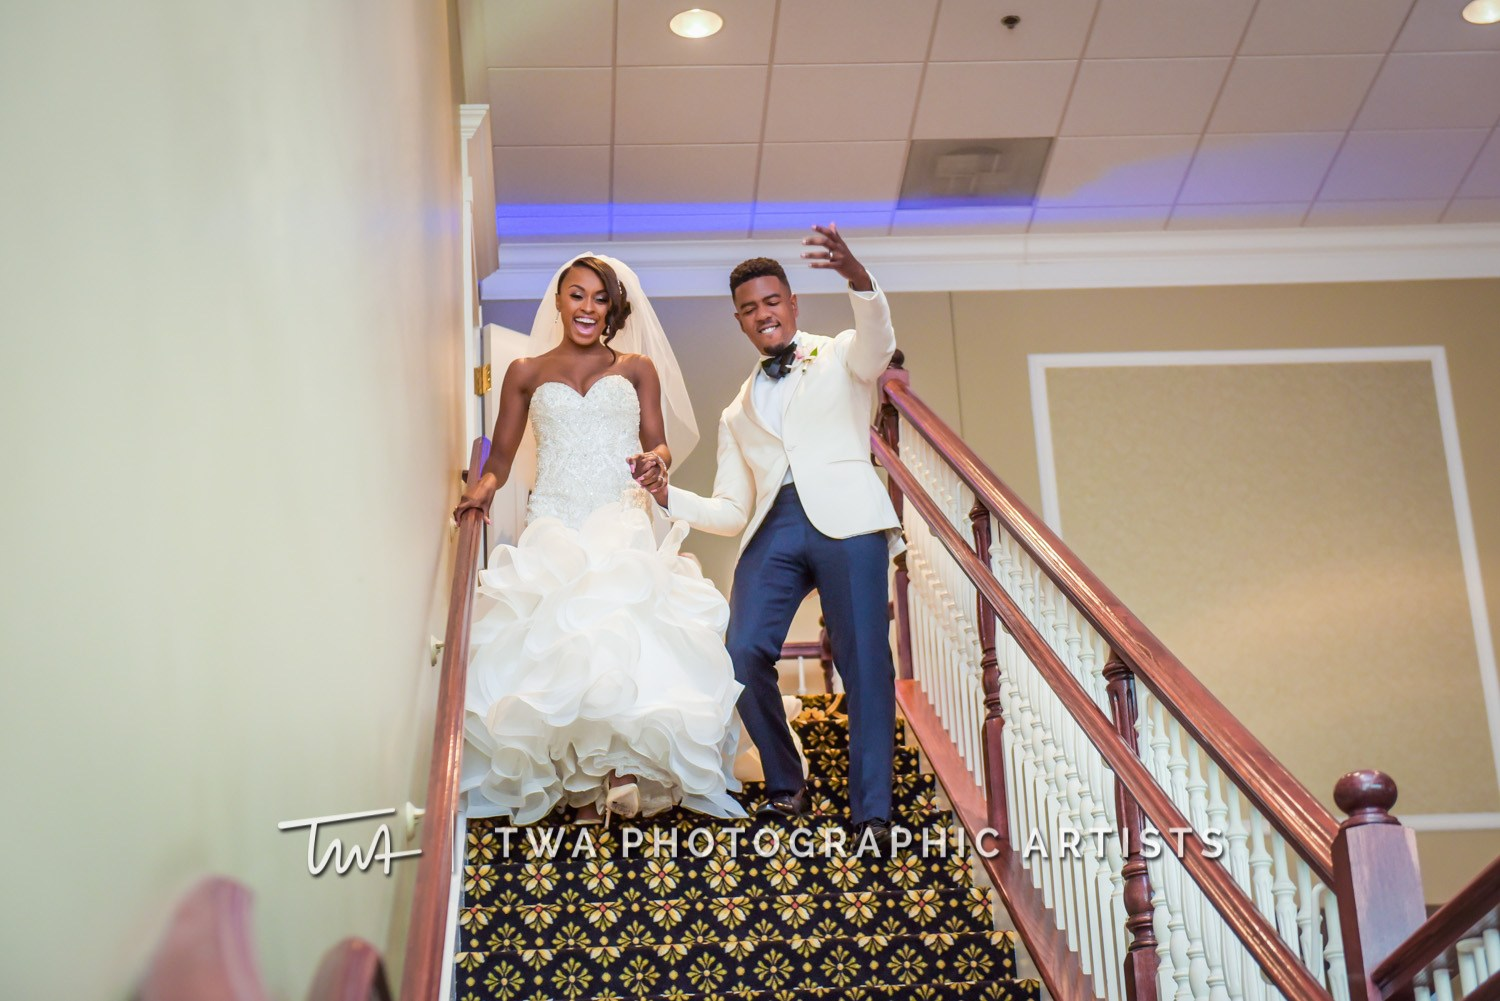 Chicago-Wedding-Photographer-TWA-Photographic-Artists-DiNolfo_s-Banquets_Smith_Stapleton_ZZ_CL-095-0587